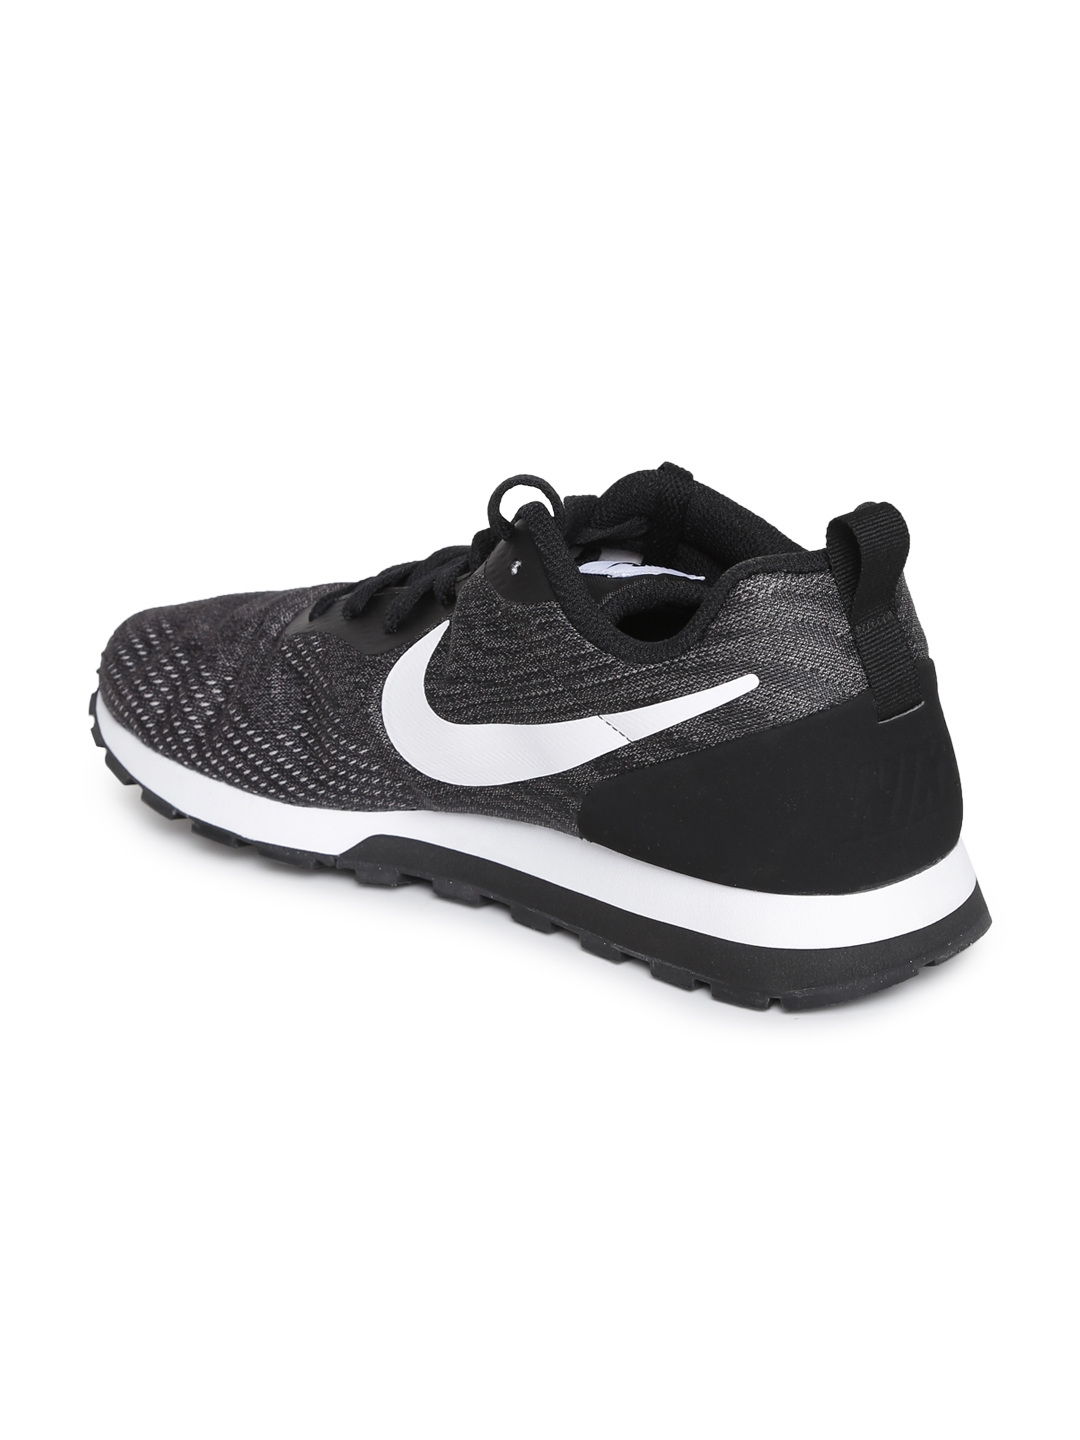 best cheap a77b5 ba16e 11513322354090-Nike-Men-Casual-Shoes-1901513322354013-2.jpg